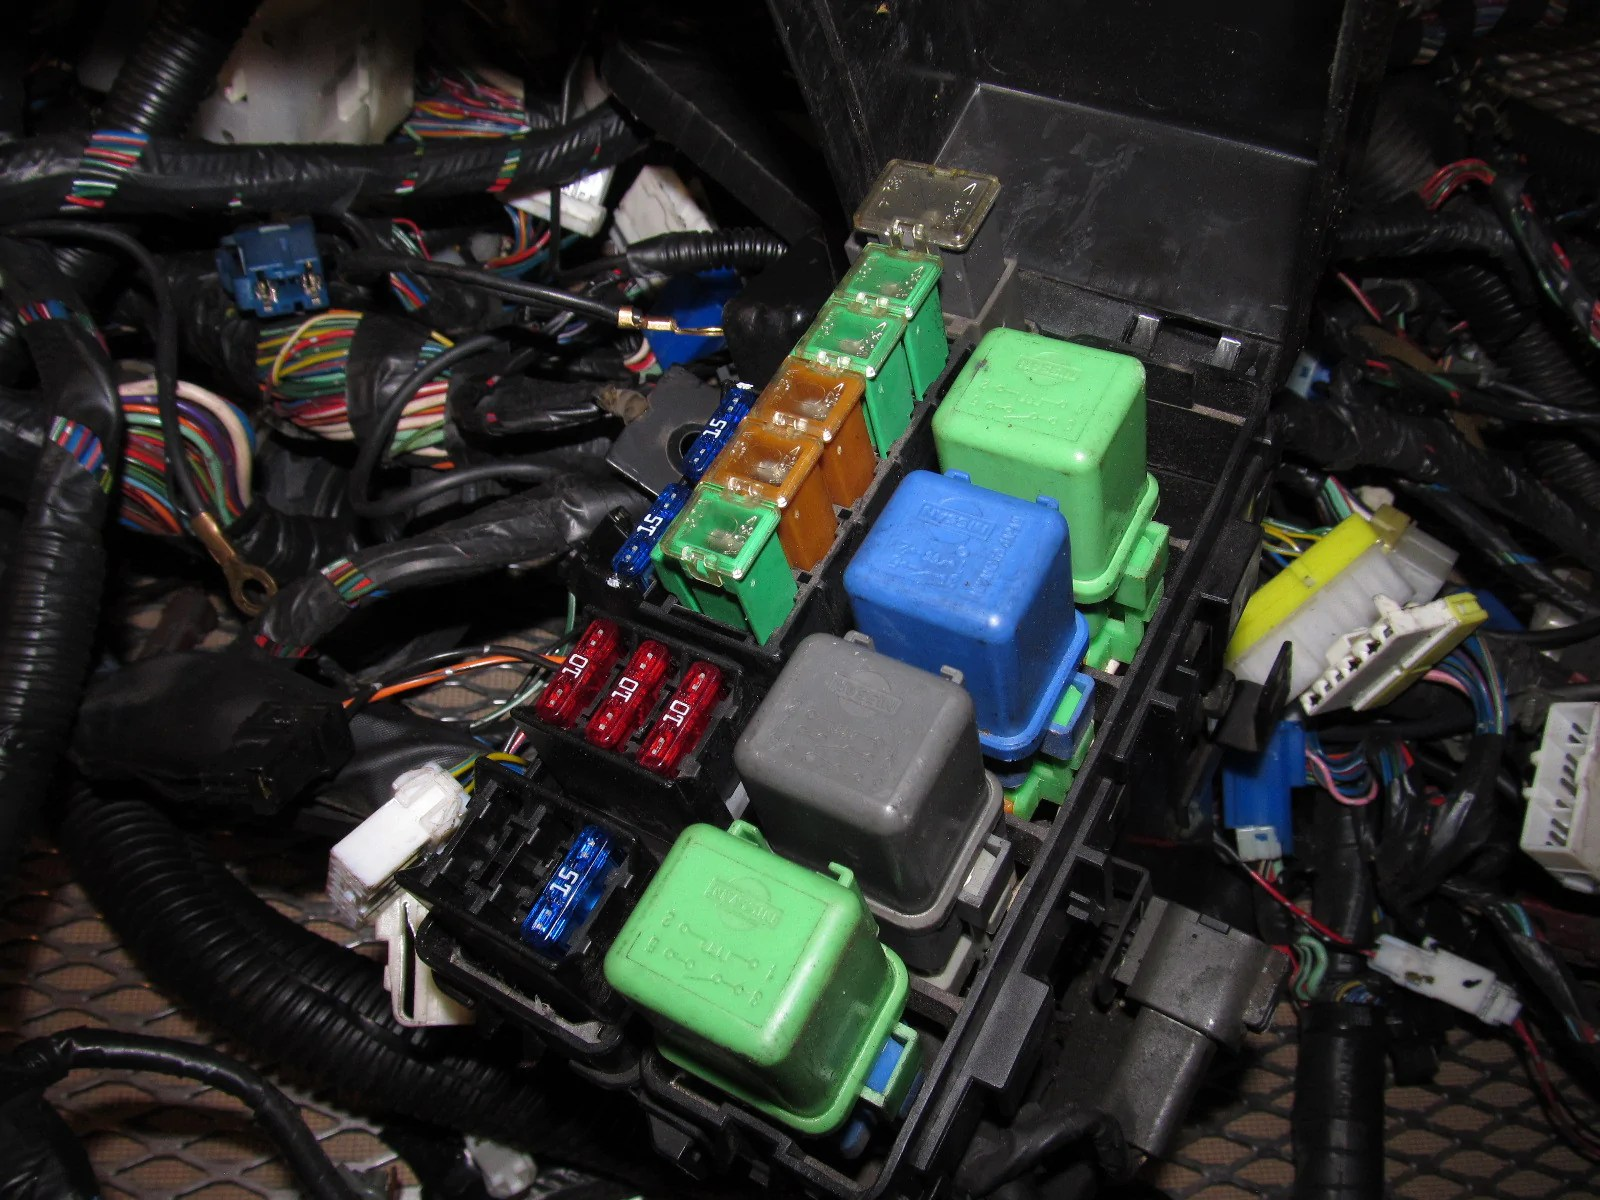 1996 nissan 240sx fuse box schema diagram database97 nissan 240sx fuse box wiring diagram go 1996 [ 1600 x 1200 Pixel ]